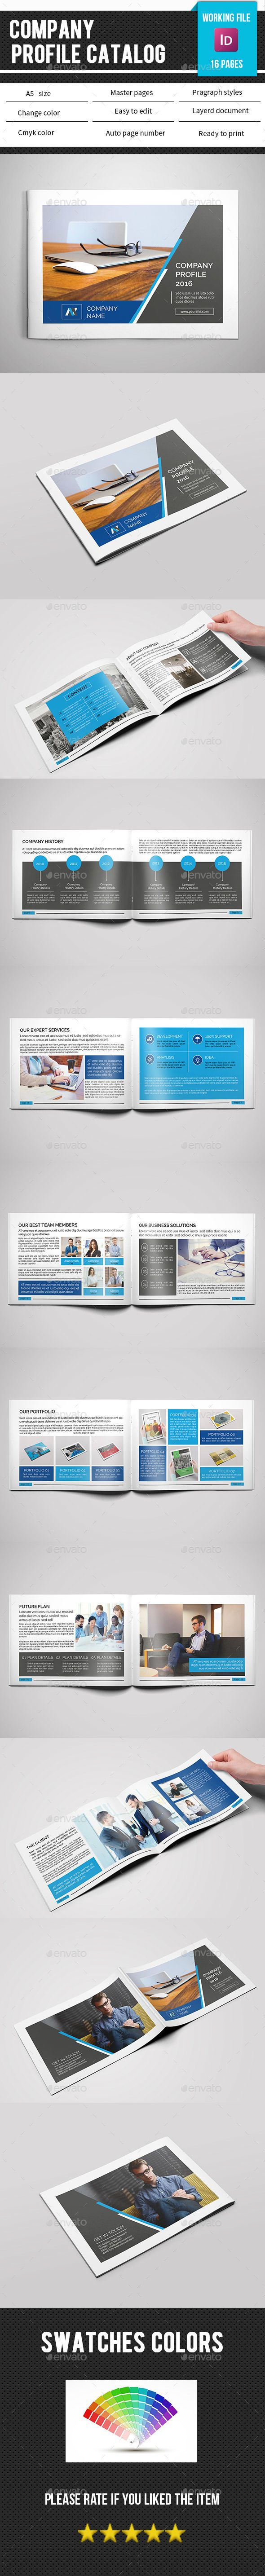 Clean Corporate Brochure / Catalog Template InDesign INDD. Download ...